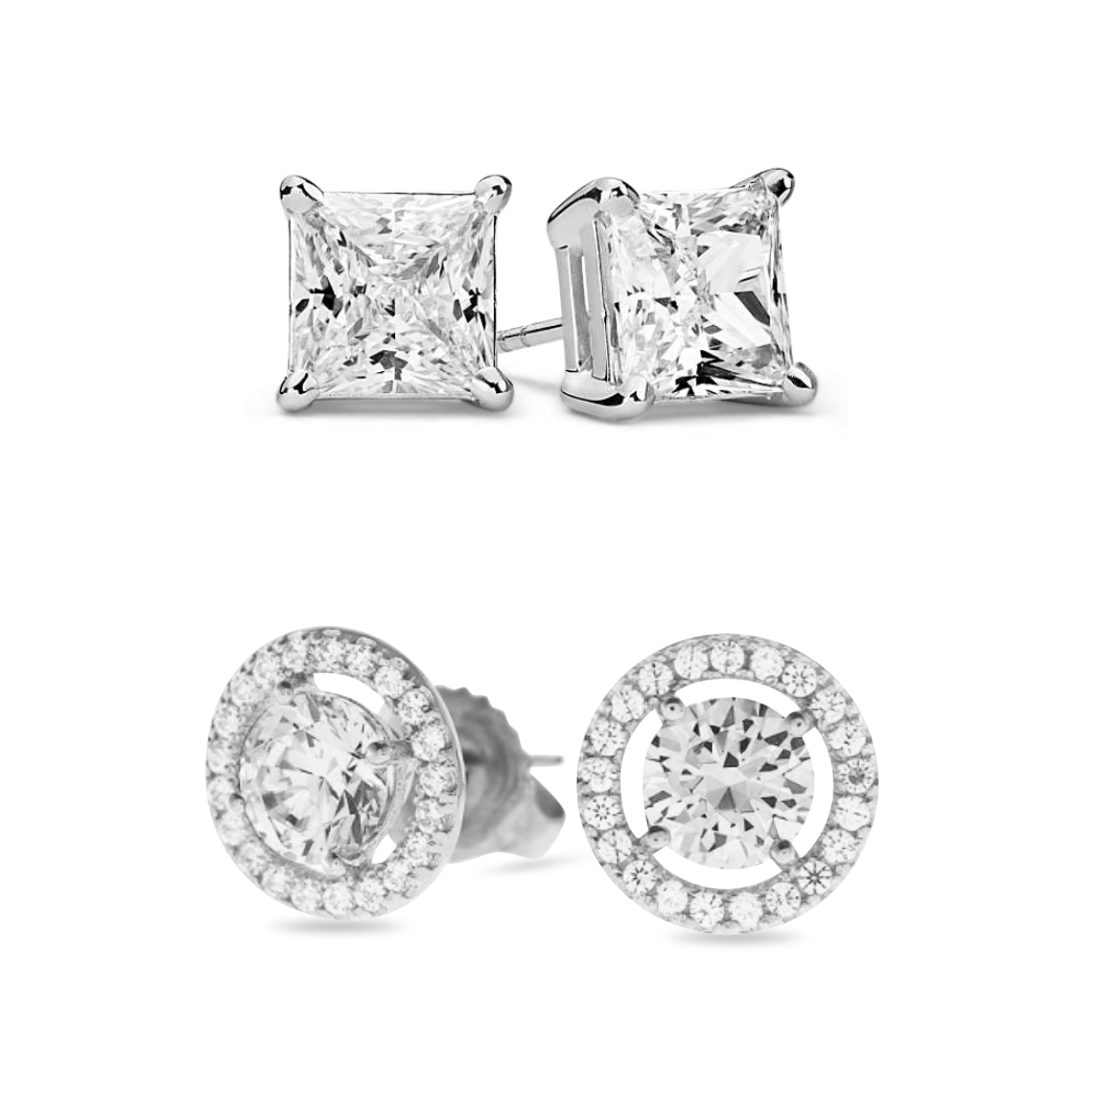 [PROMO SET] Celeste Lilith Earrings Diamond Set